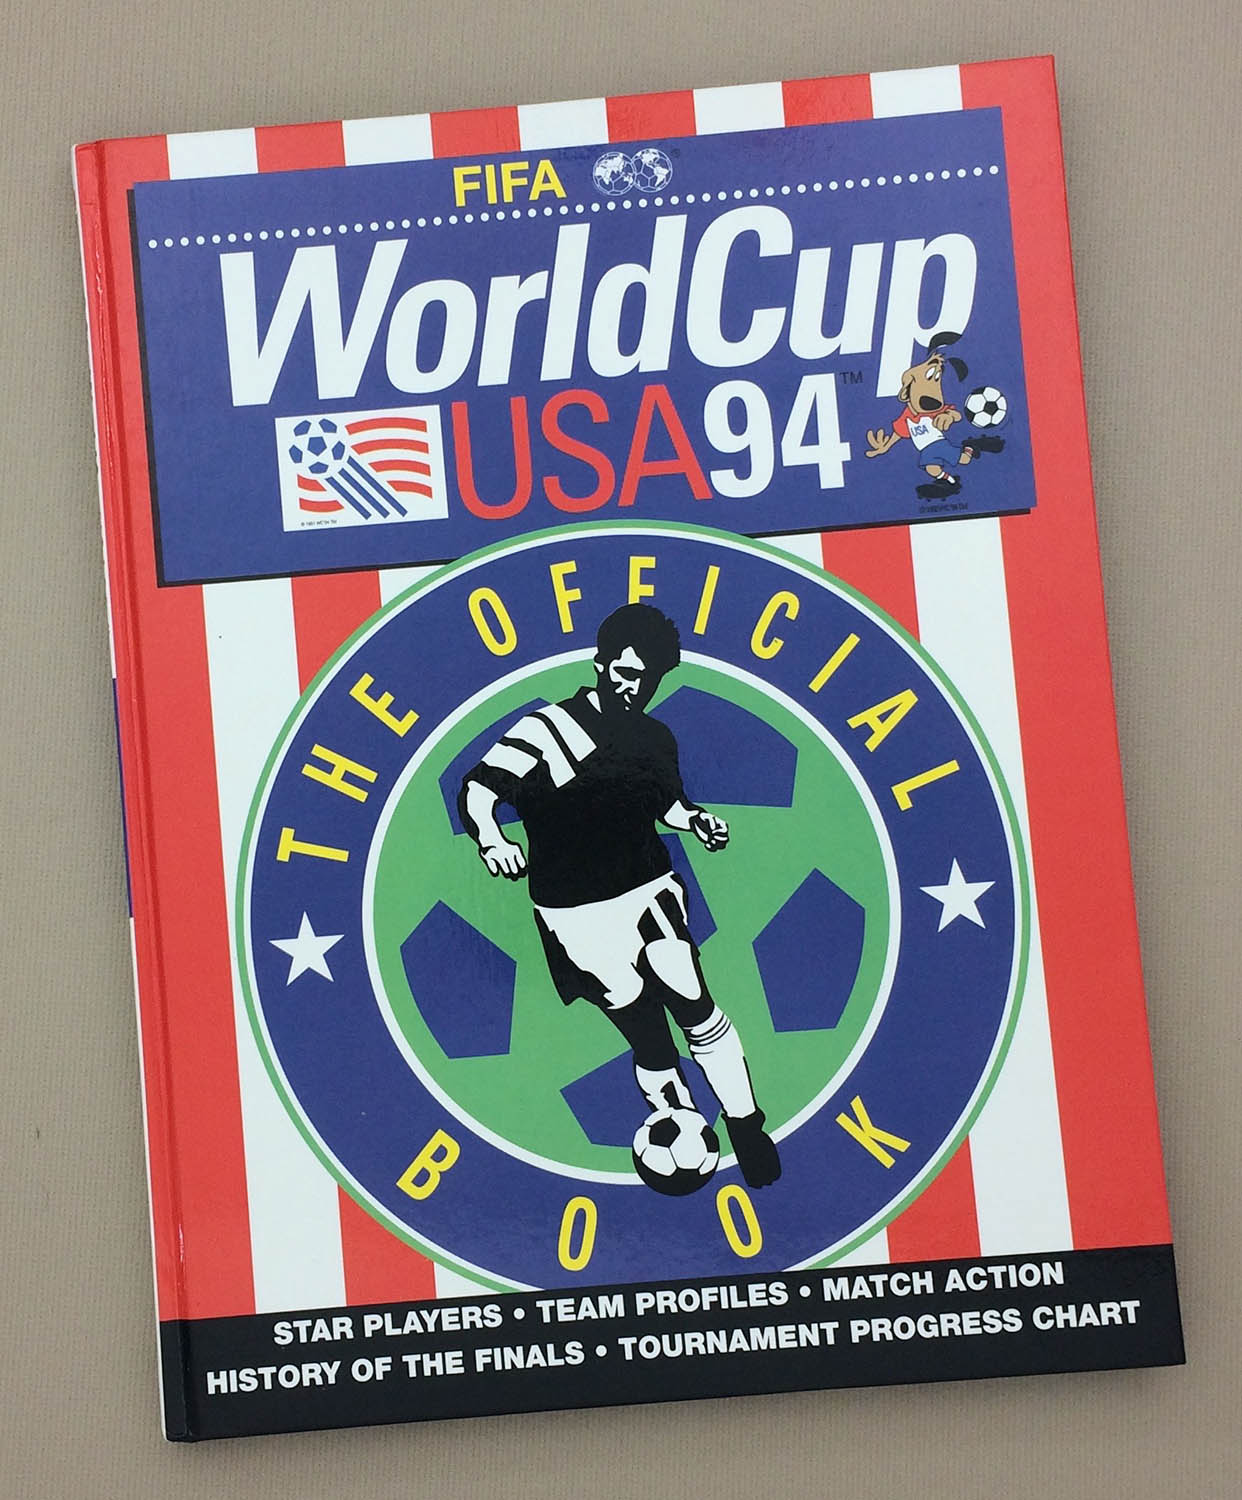 FIFA World Cup USA94 The Official Book